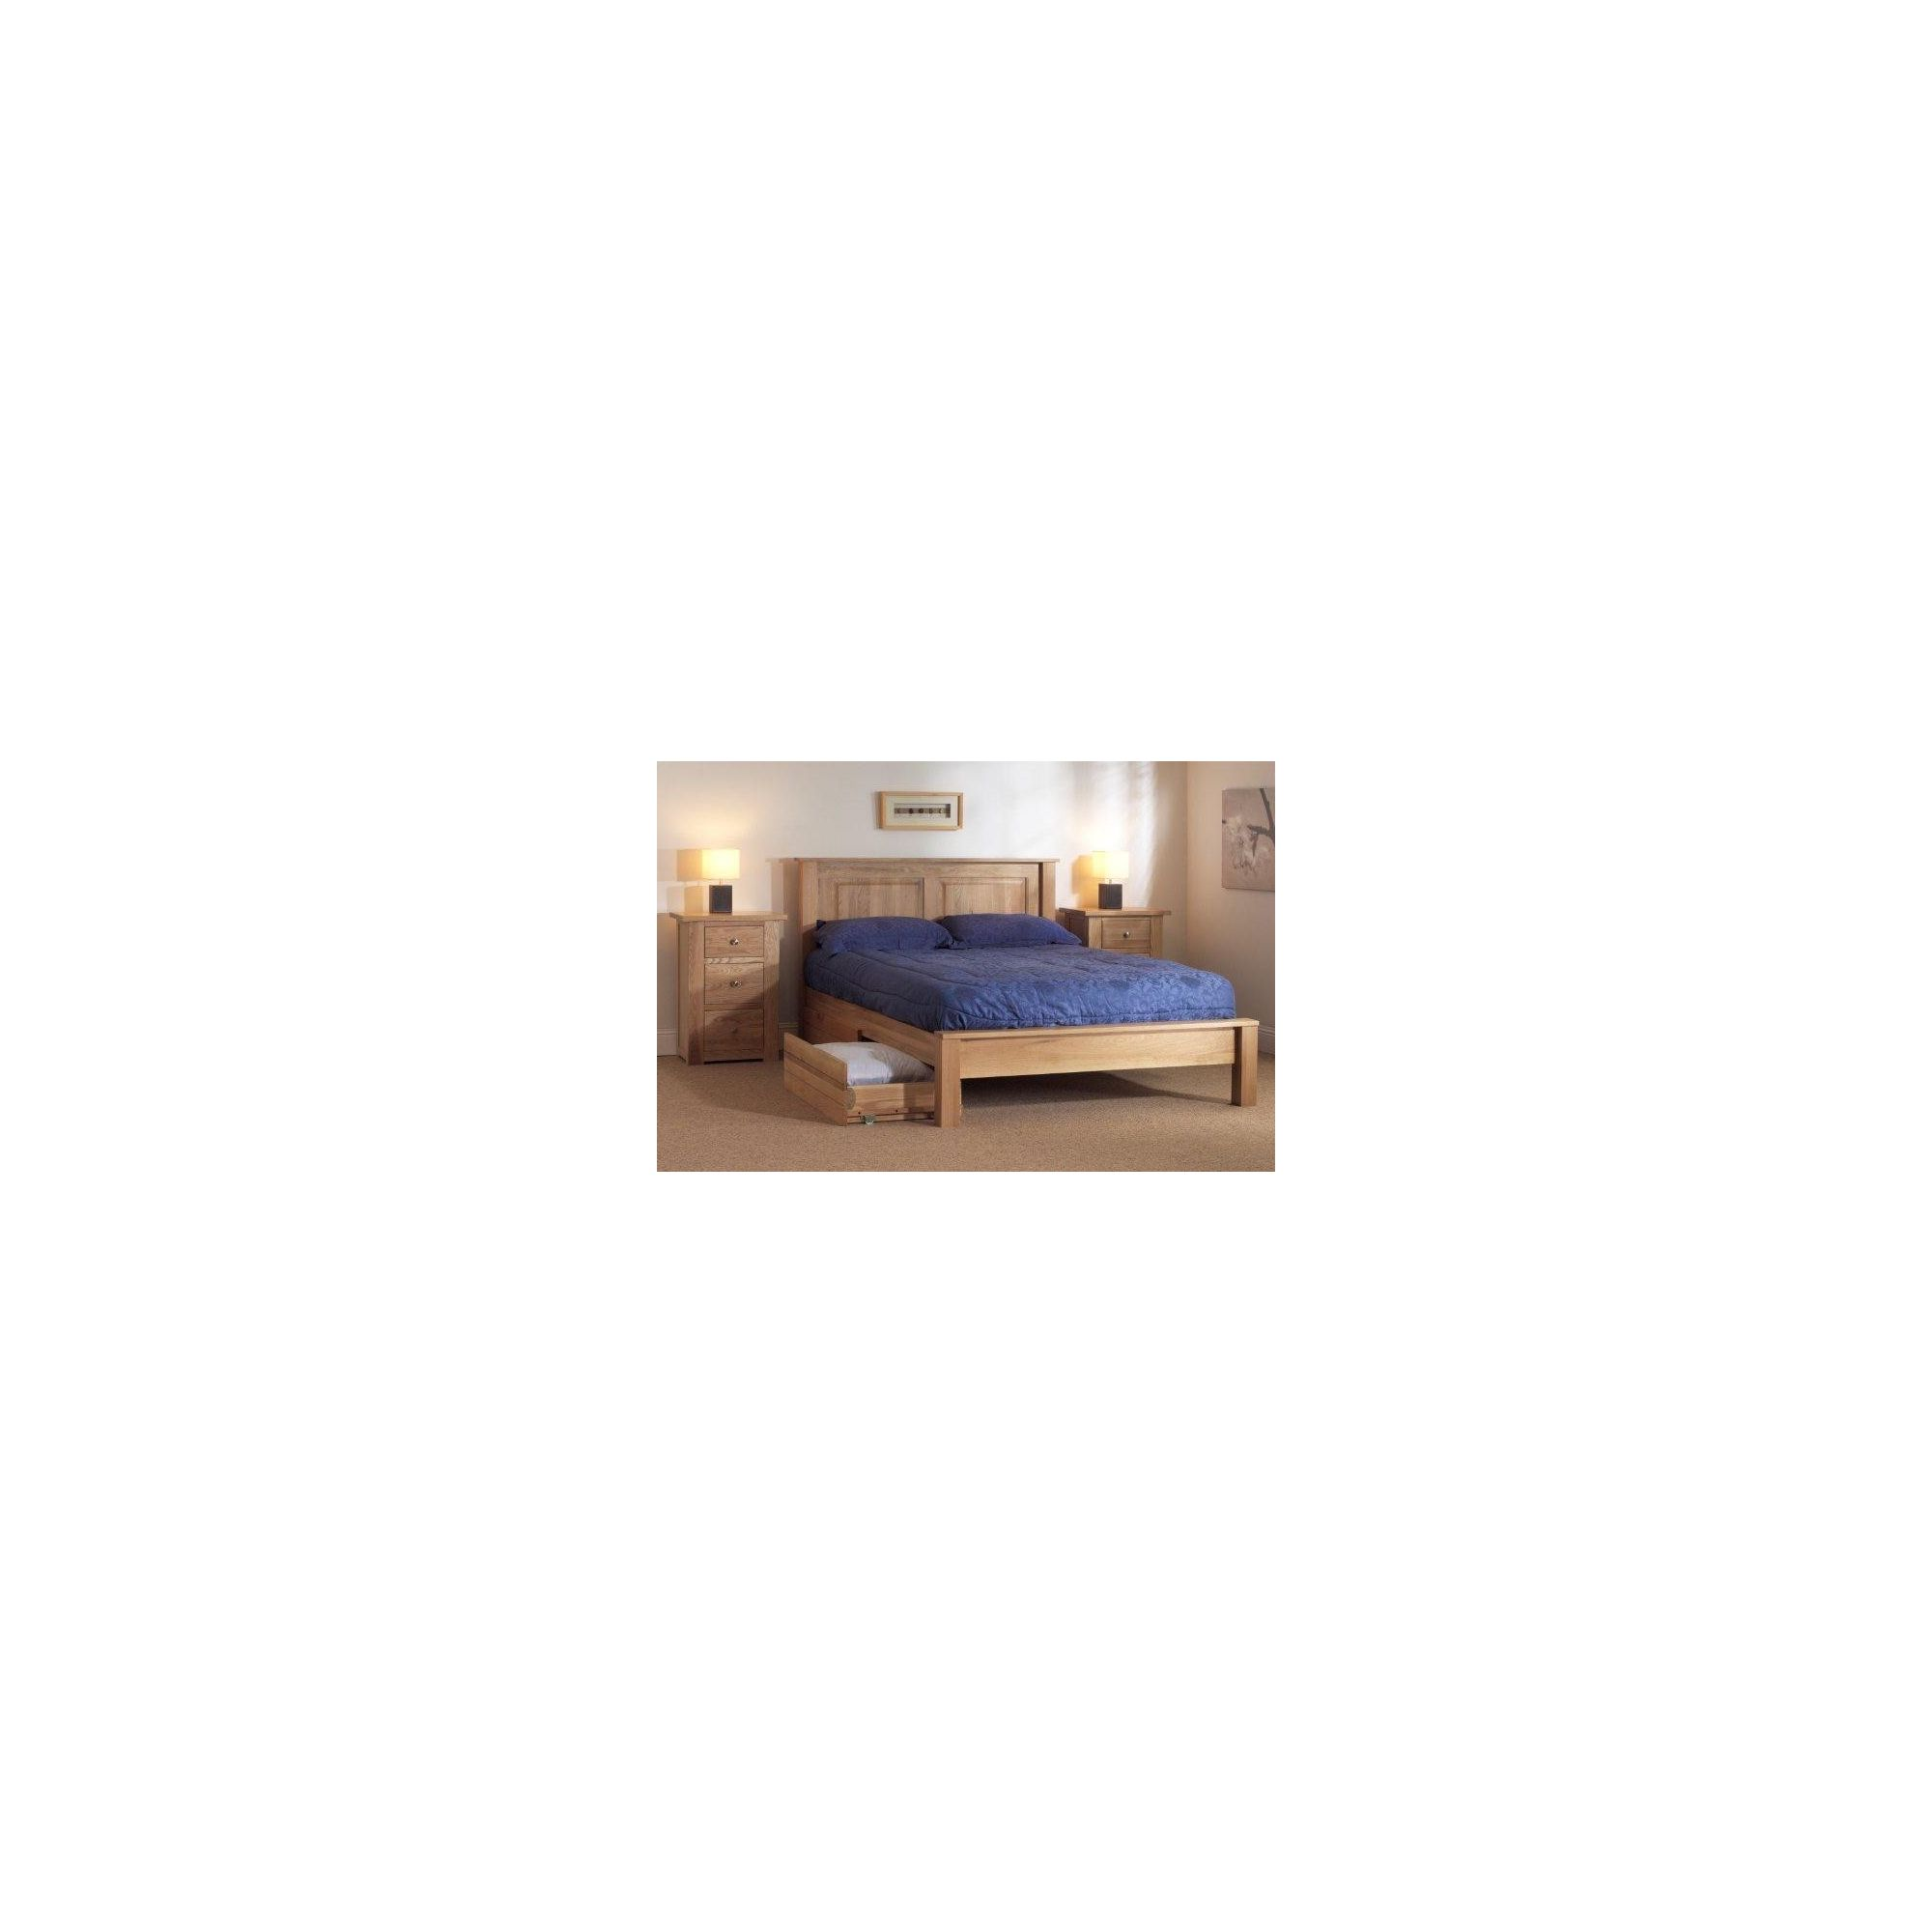 Sleepy Valley Oakham Bed - 2 Underbed Drawers/ Oak - Double at Tesco Direct